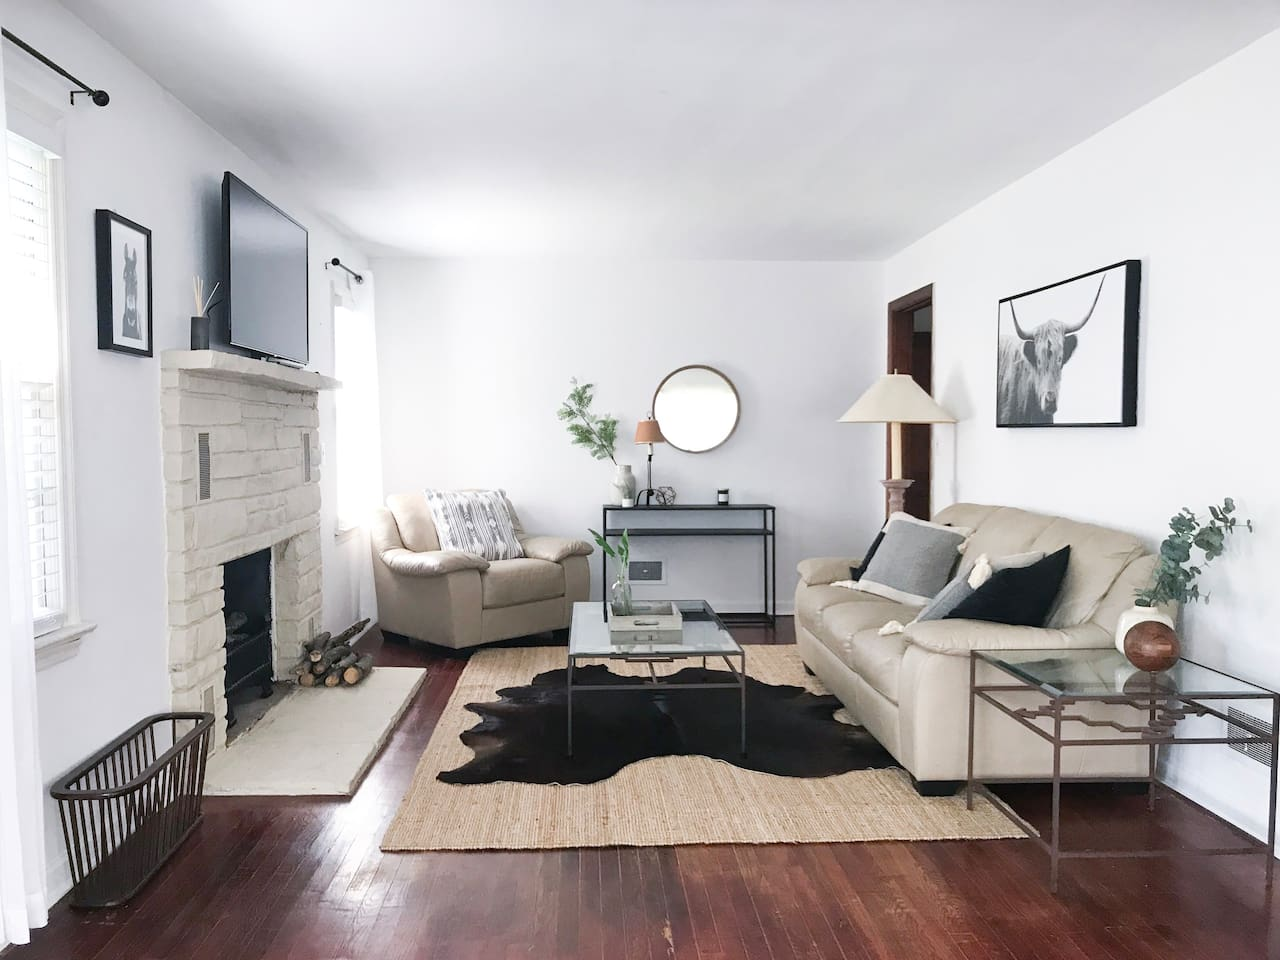 The living room offers cozy comfortable seating and modern farmhouse decor, along with cable TV. Please note that the fireplace is unfortunately non-functional at this time.